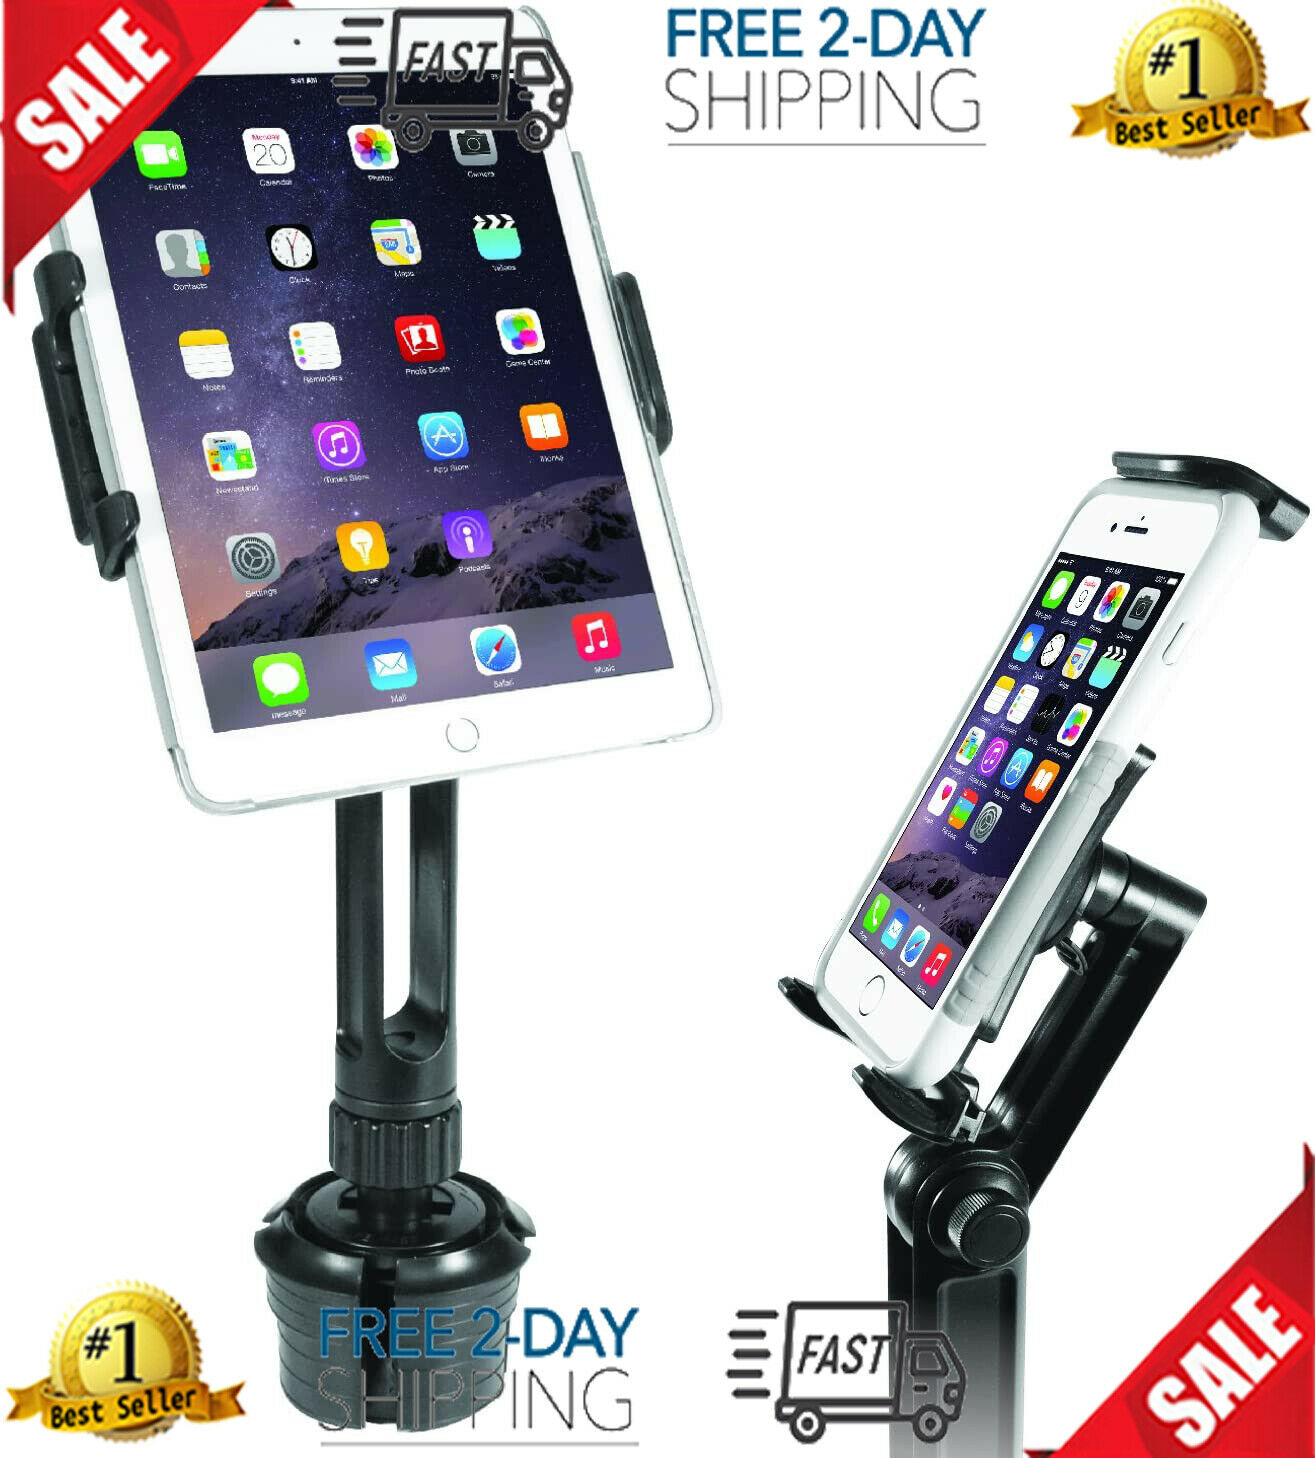 Macally Heavy-Duty Tablet Holder For Car - Works As Cup Hold